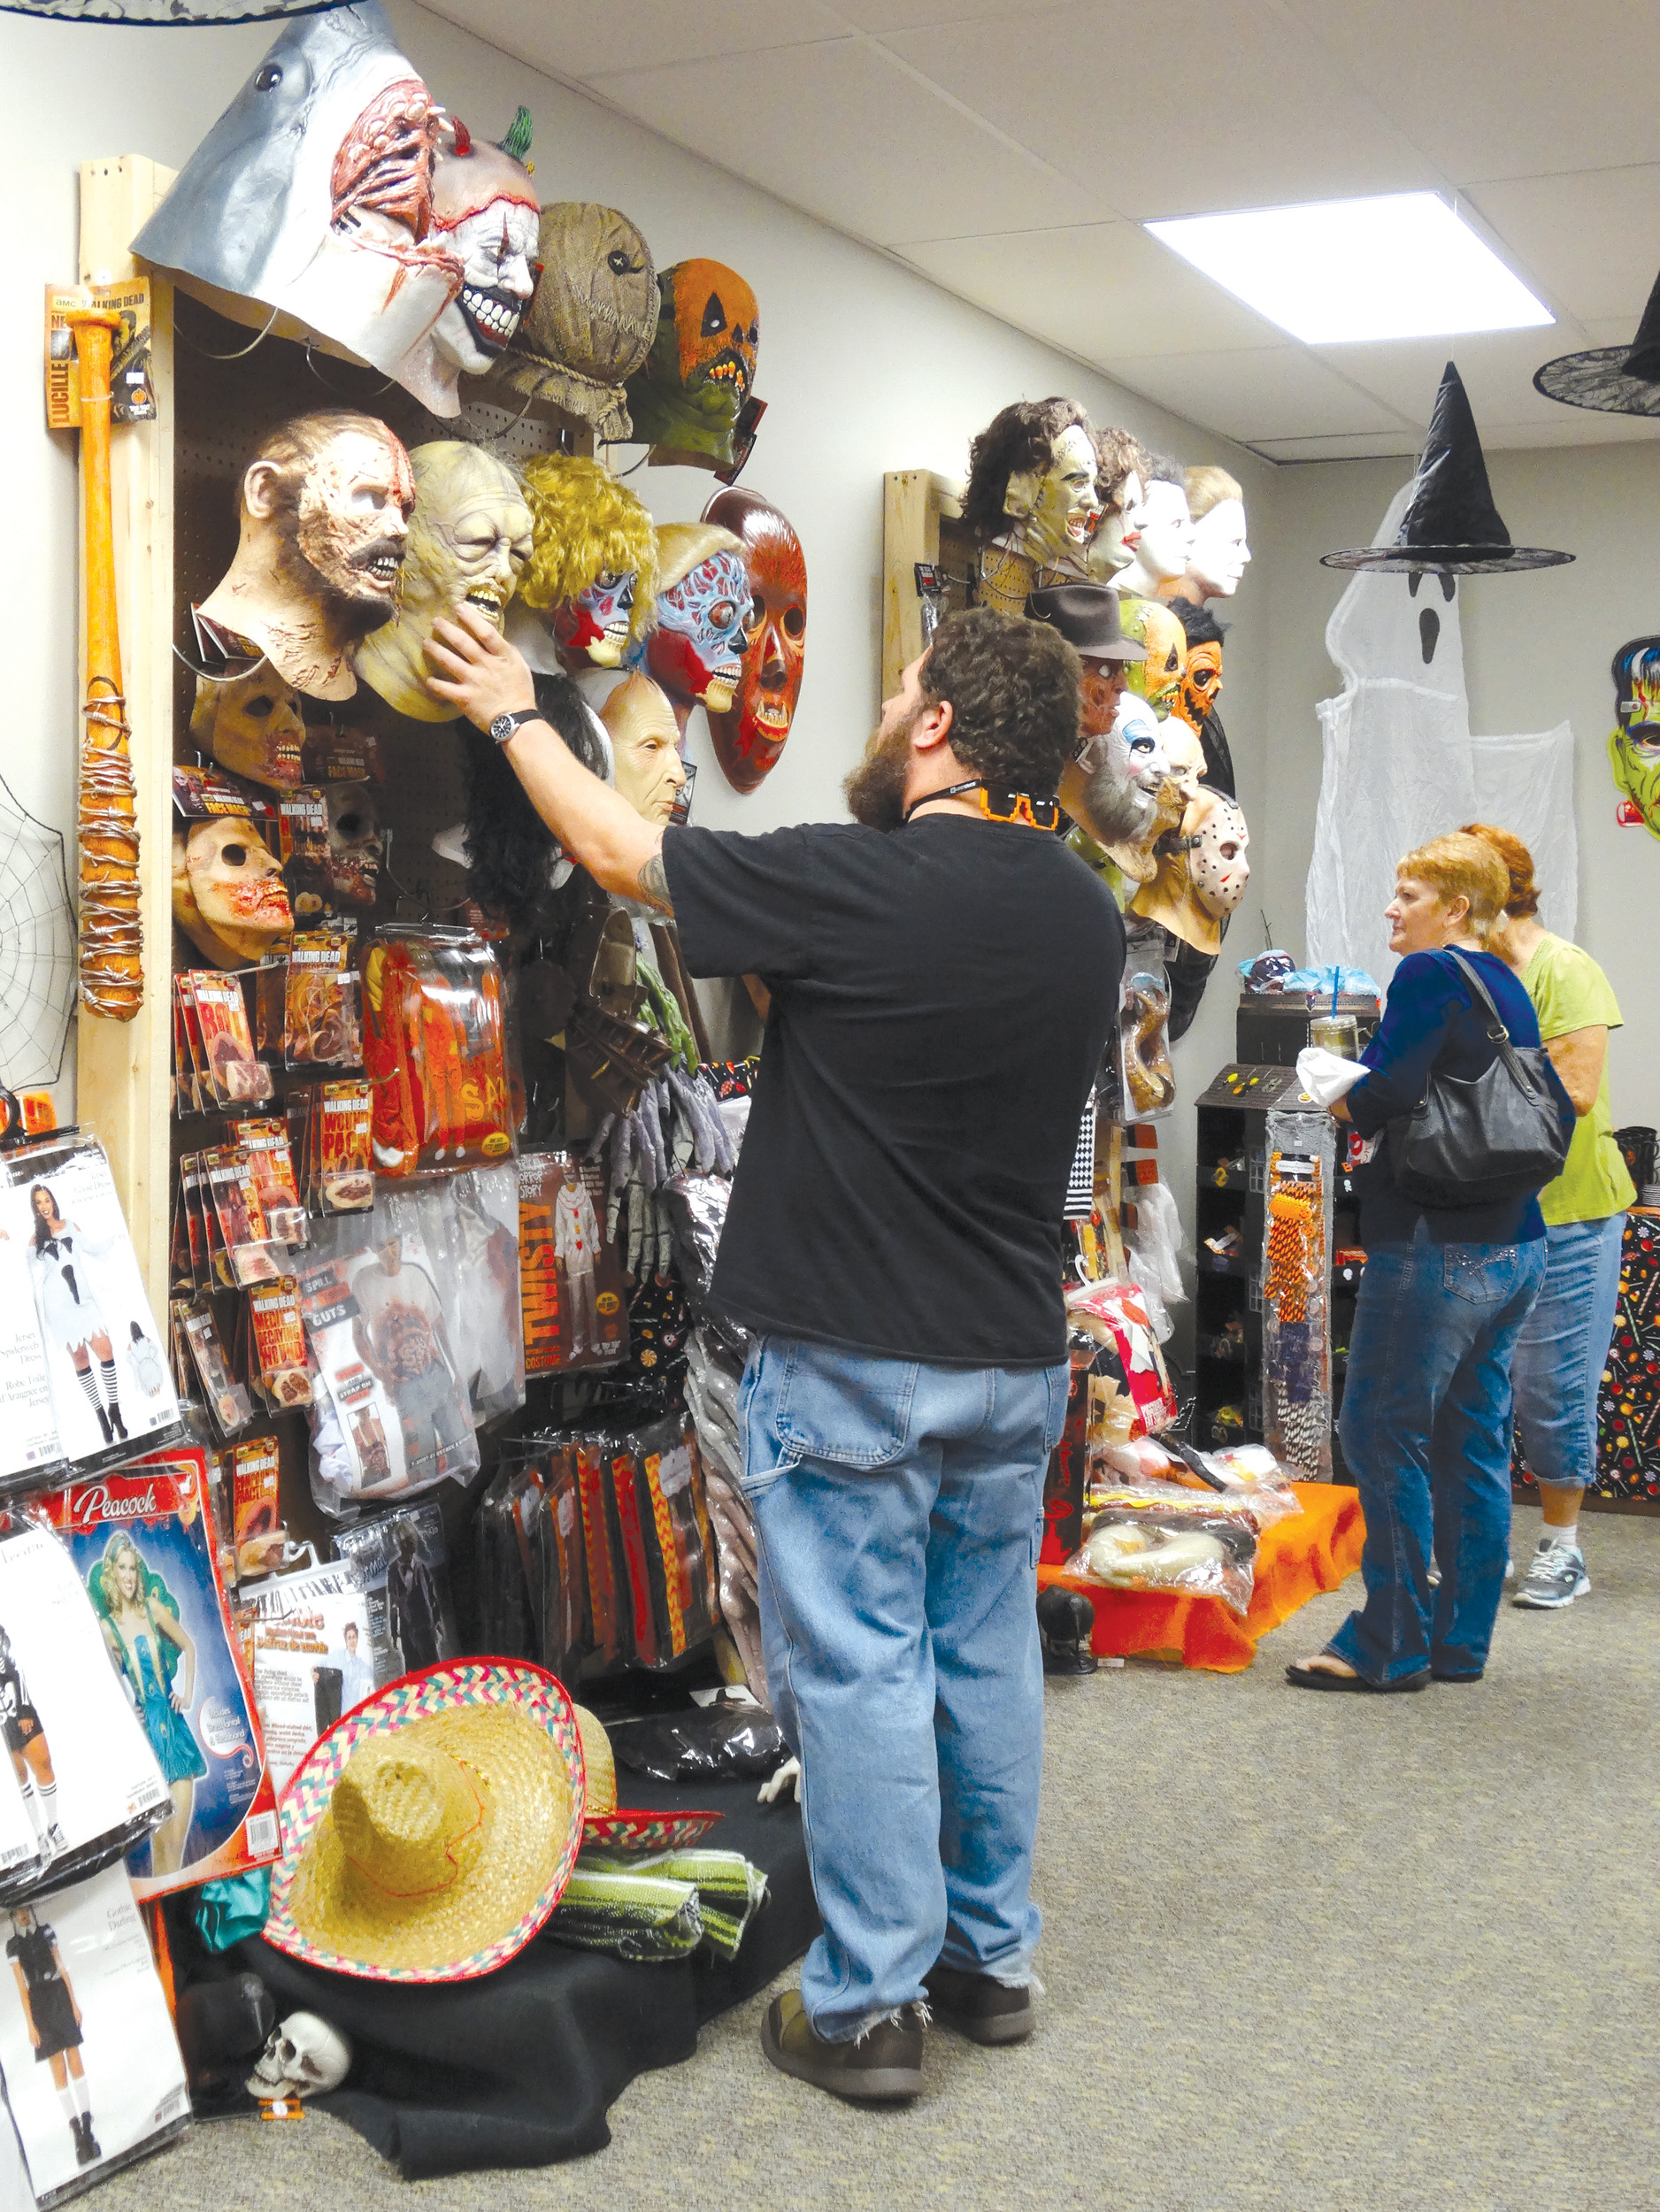 photos by MELANIE SMITH / THE SUMTER ITEM  Jeff Whisnant of Sumter checks out a mask at M and M's Lil Shop o' Horrors on West Liberty Street on Tuesday afternoon. He said he'd heard about the Halloween shop on Facebook and that his friends were also interested in visiting the new store. It will be open through the first week of November and offers costumes and fall decorations.